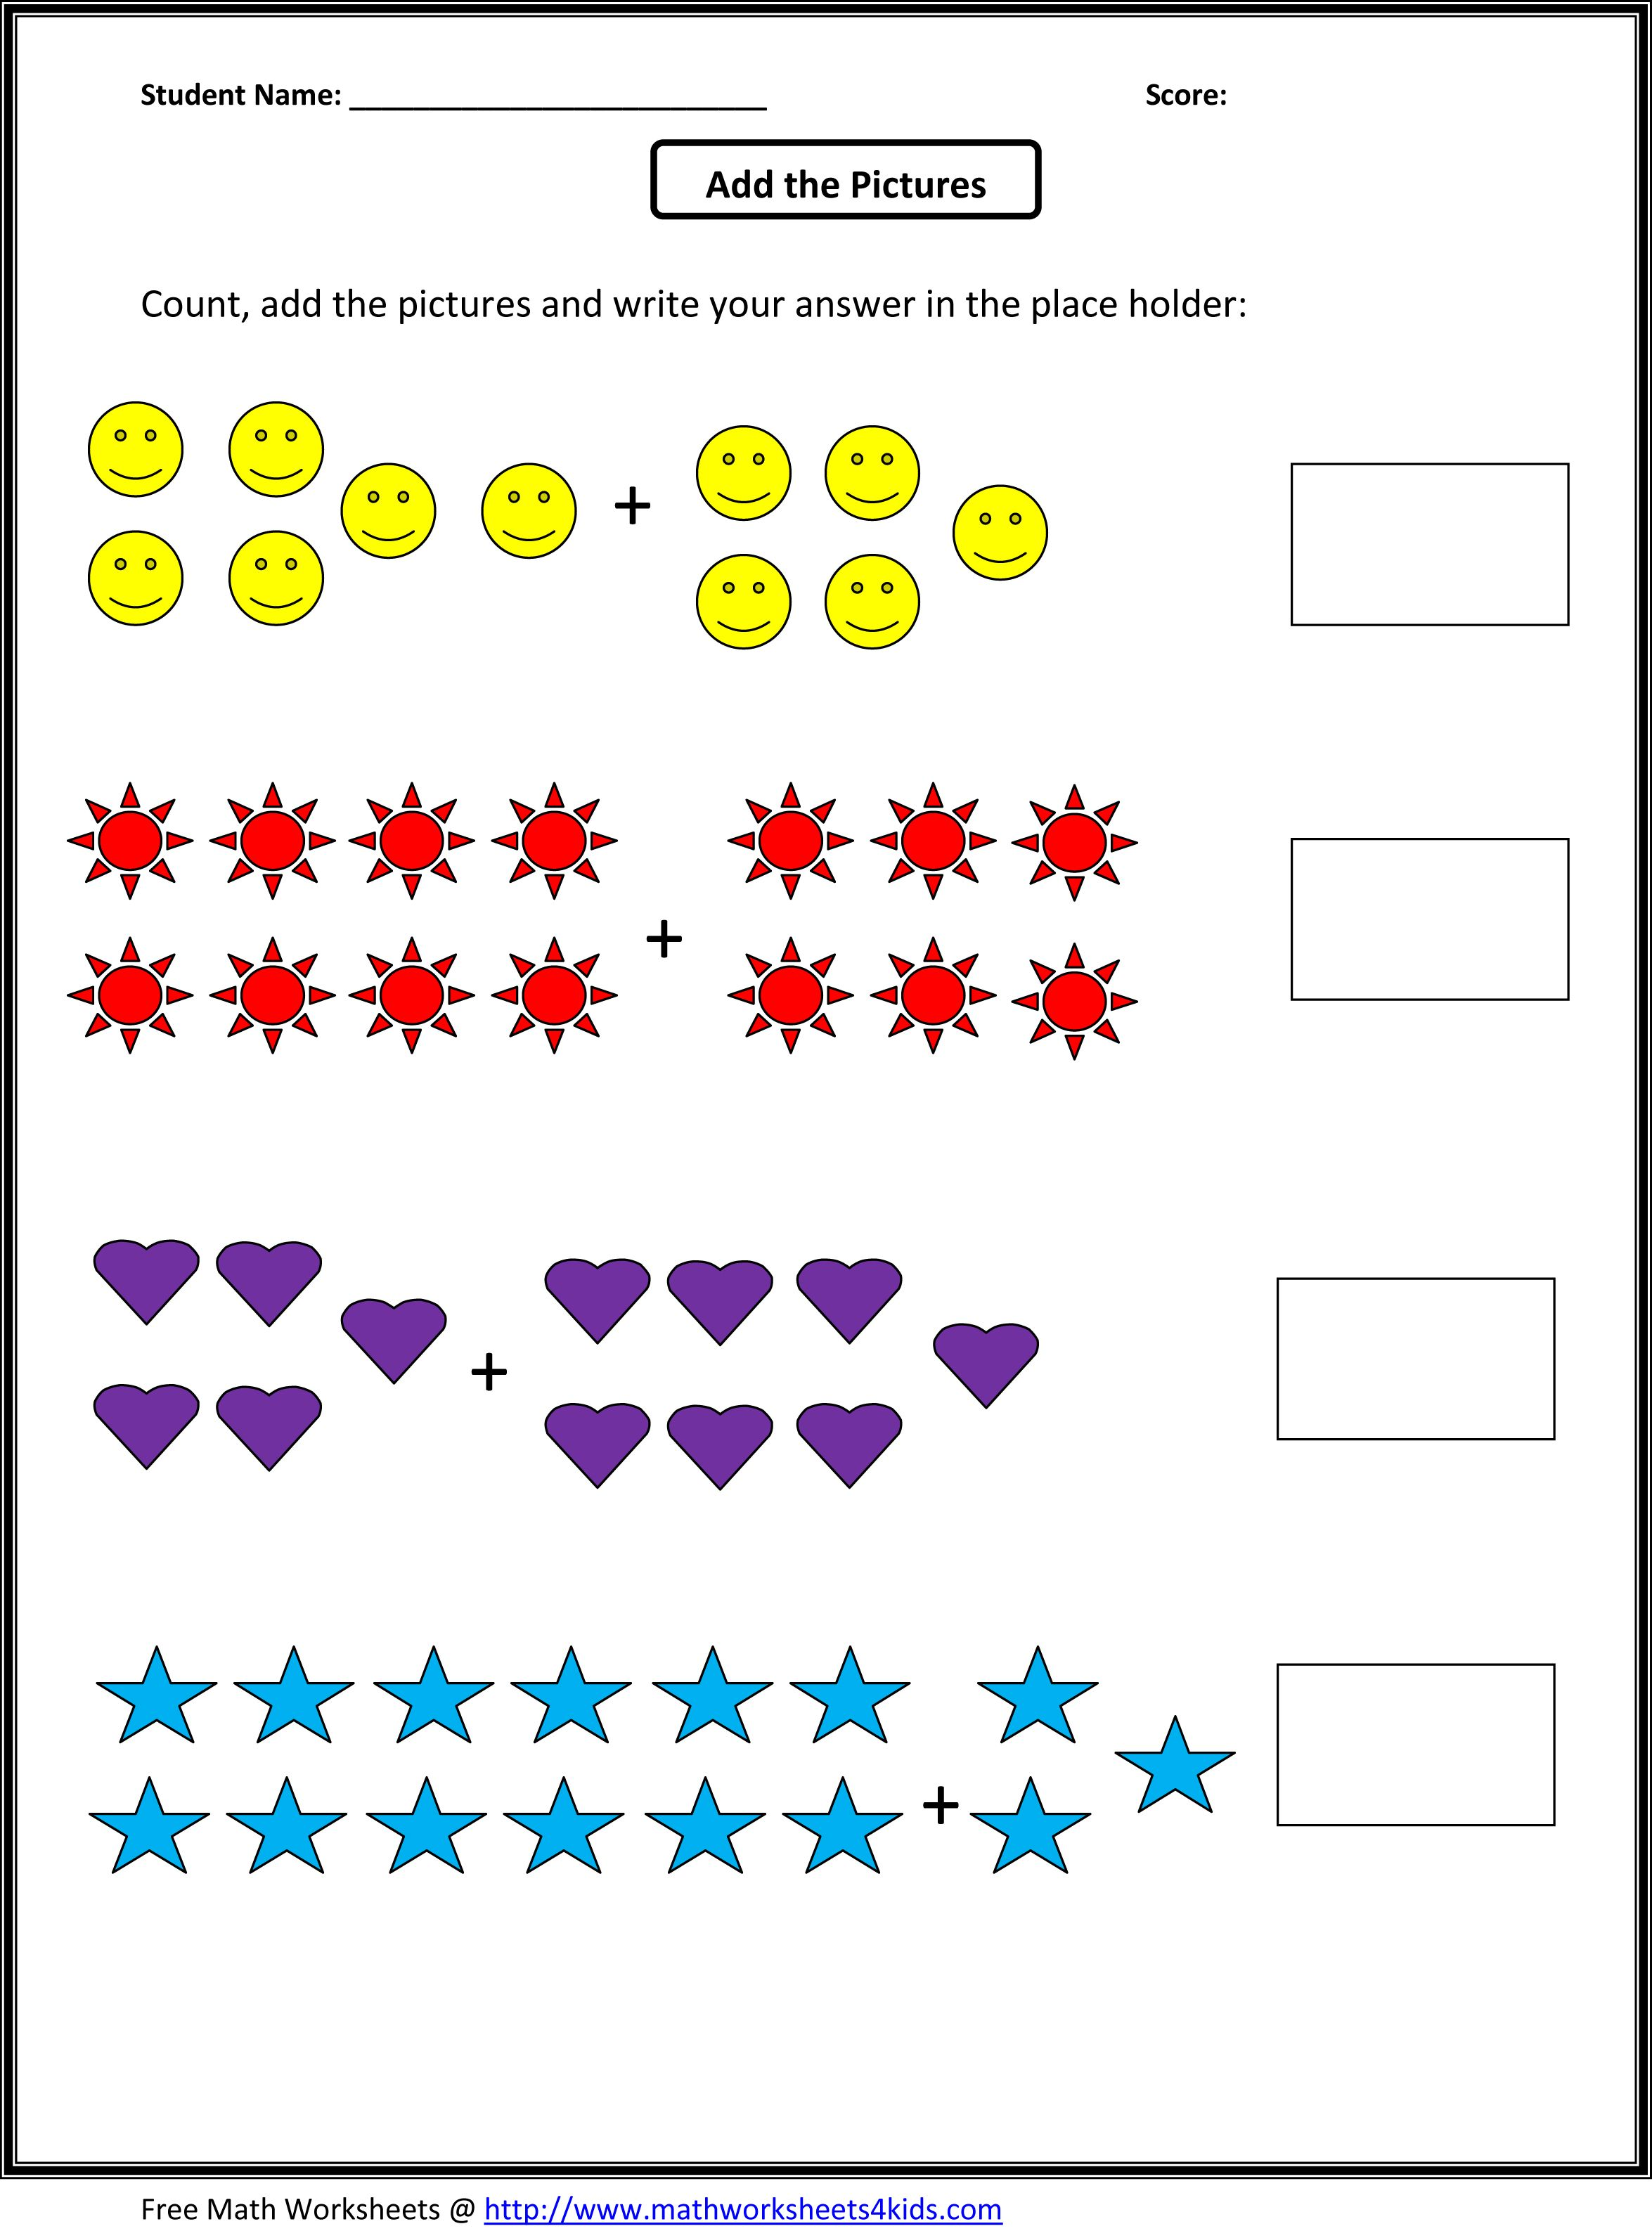 Worksheet Year 1 Addition Worksheets 17 images about school on pinterest mental maths worksheets year 1 and vocabulary worksheets